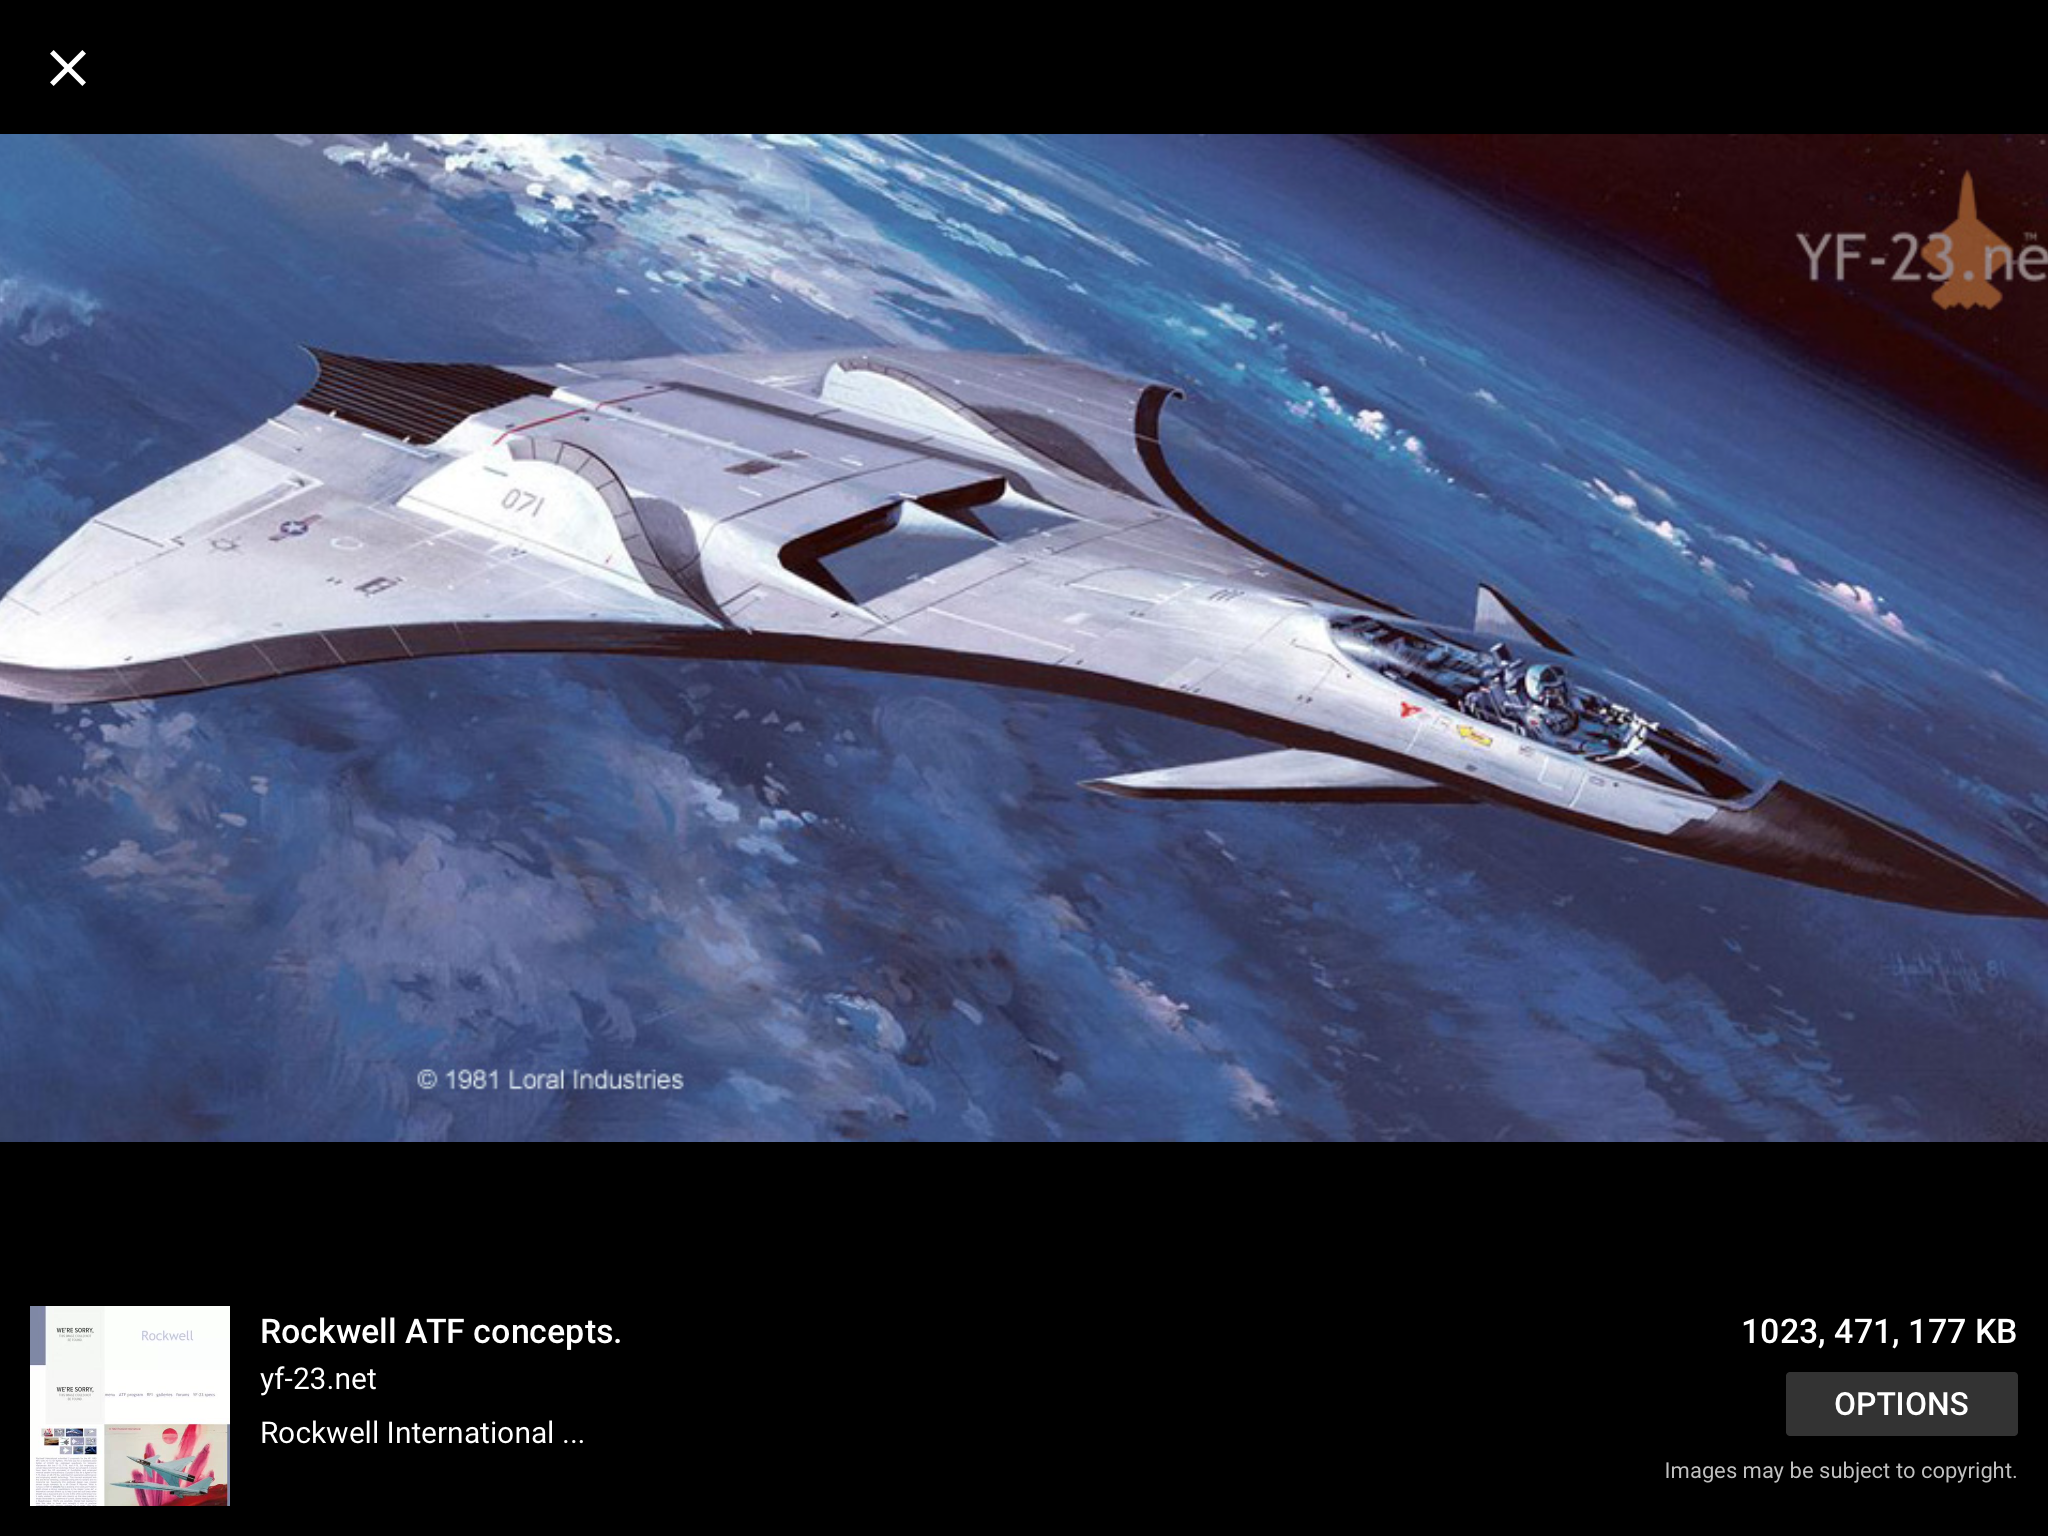 With the recent advances in technology and design aircraft concepts - Rockwell Atf Concept